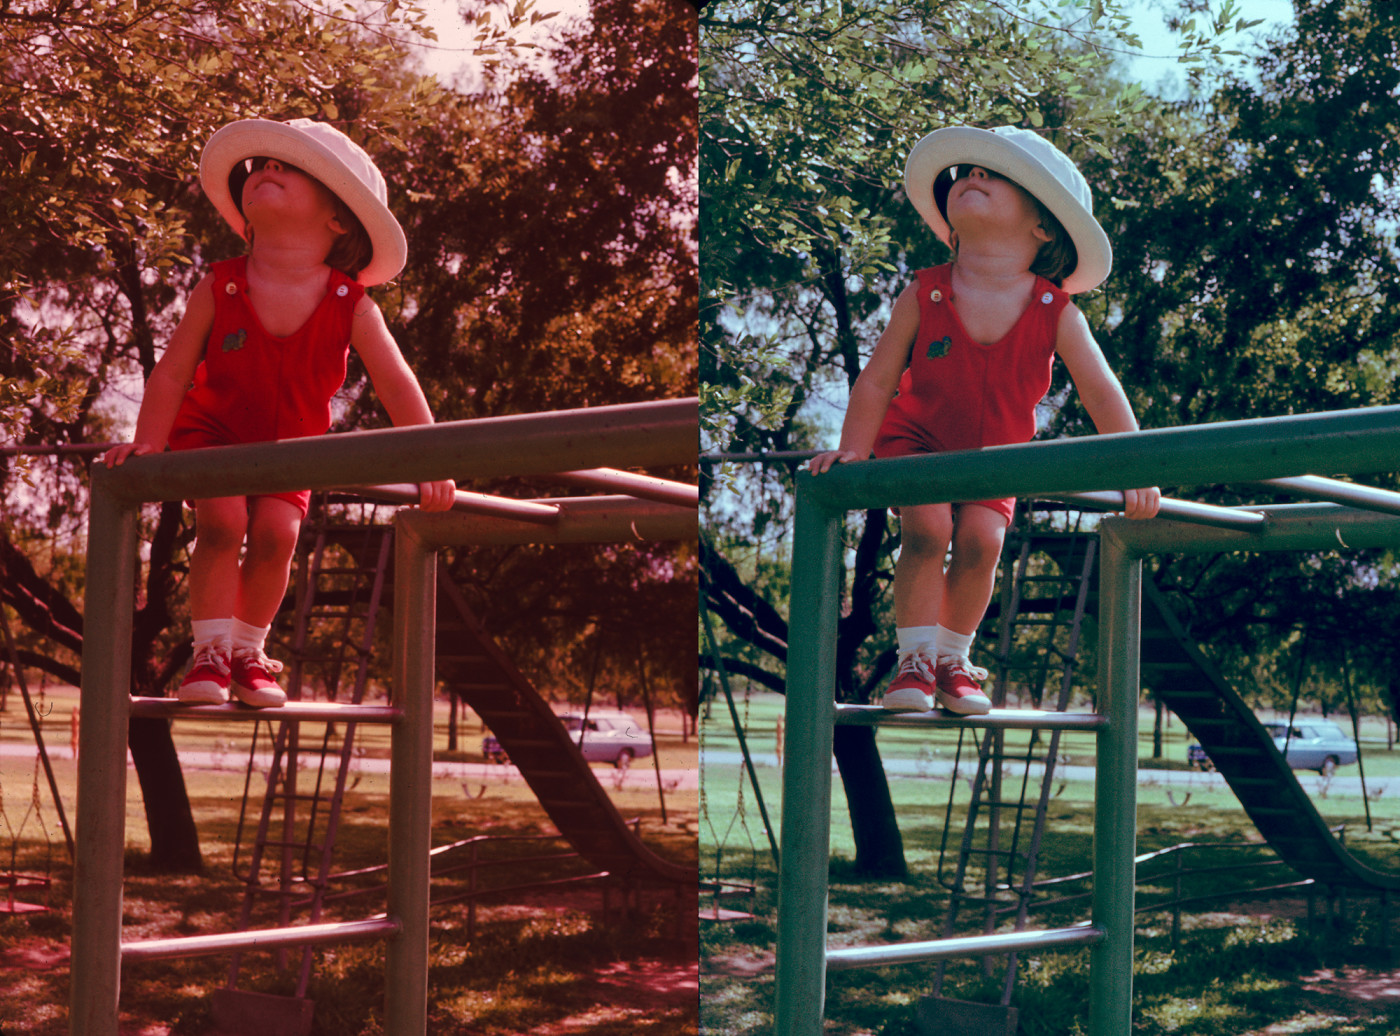 Figure 2. Ektachrome slide, without restoration (left) and restored (right), Corpus Christi TX, August 1975  [Ektachrome, 35mm. Joseph Goins; restoration Idlewild].